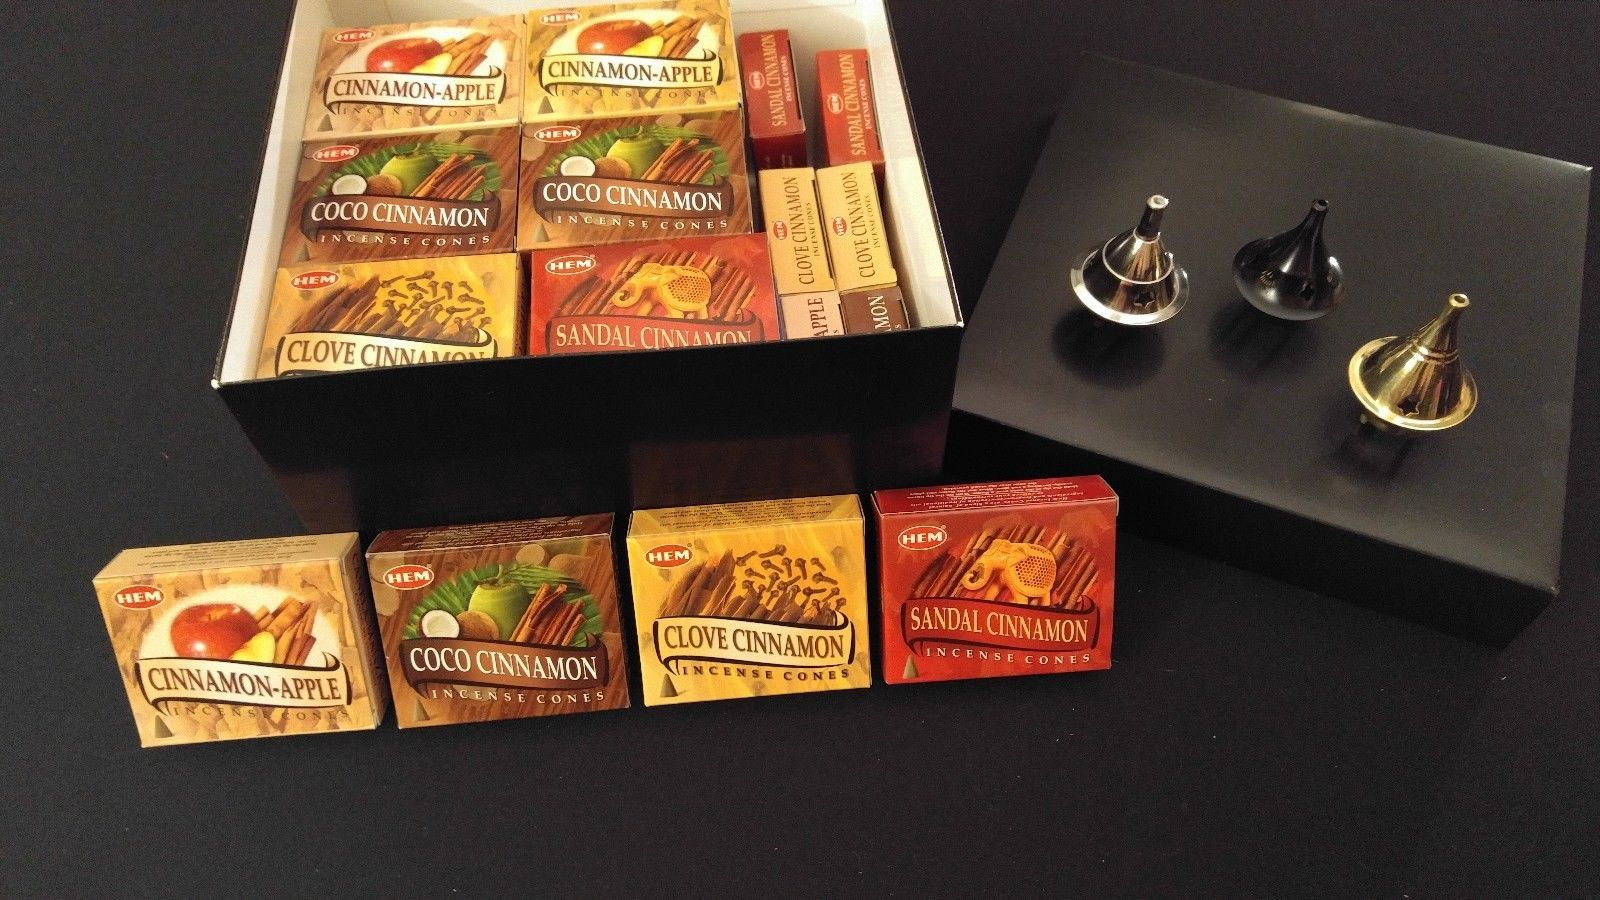 LOT OF 120 Sticks HEM COCO CINNAMON Incense  1 Box 6 TUBE OF 20 Sticks = 120